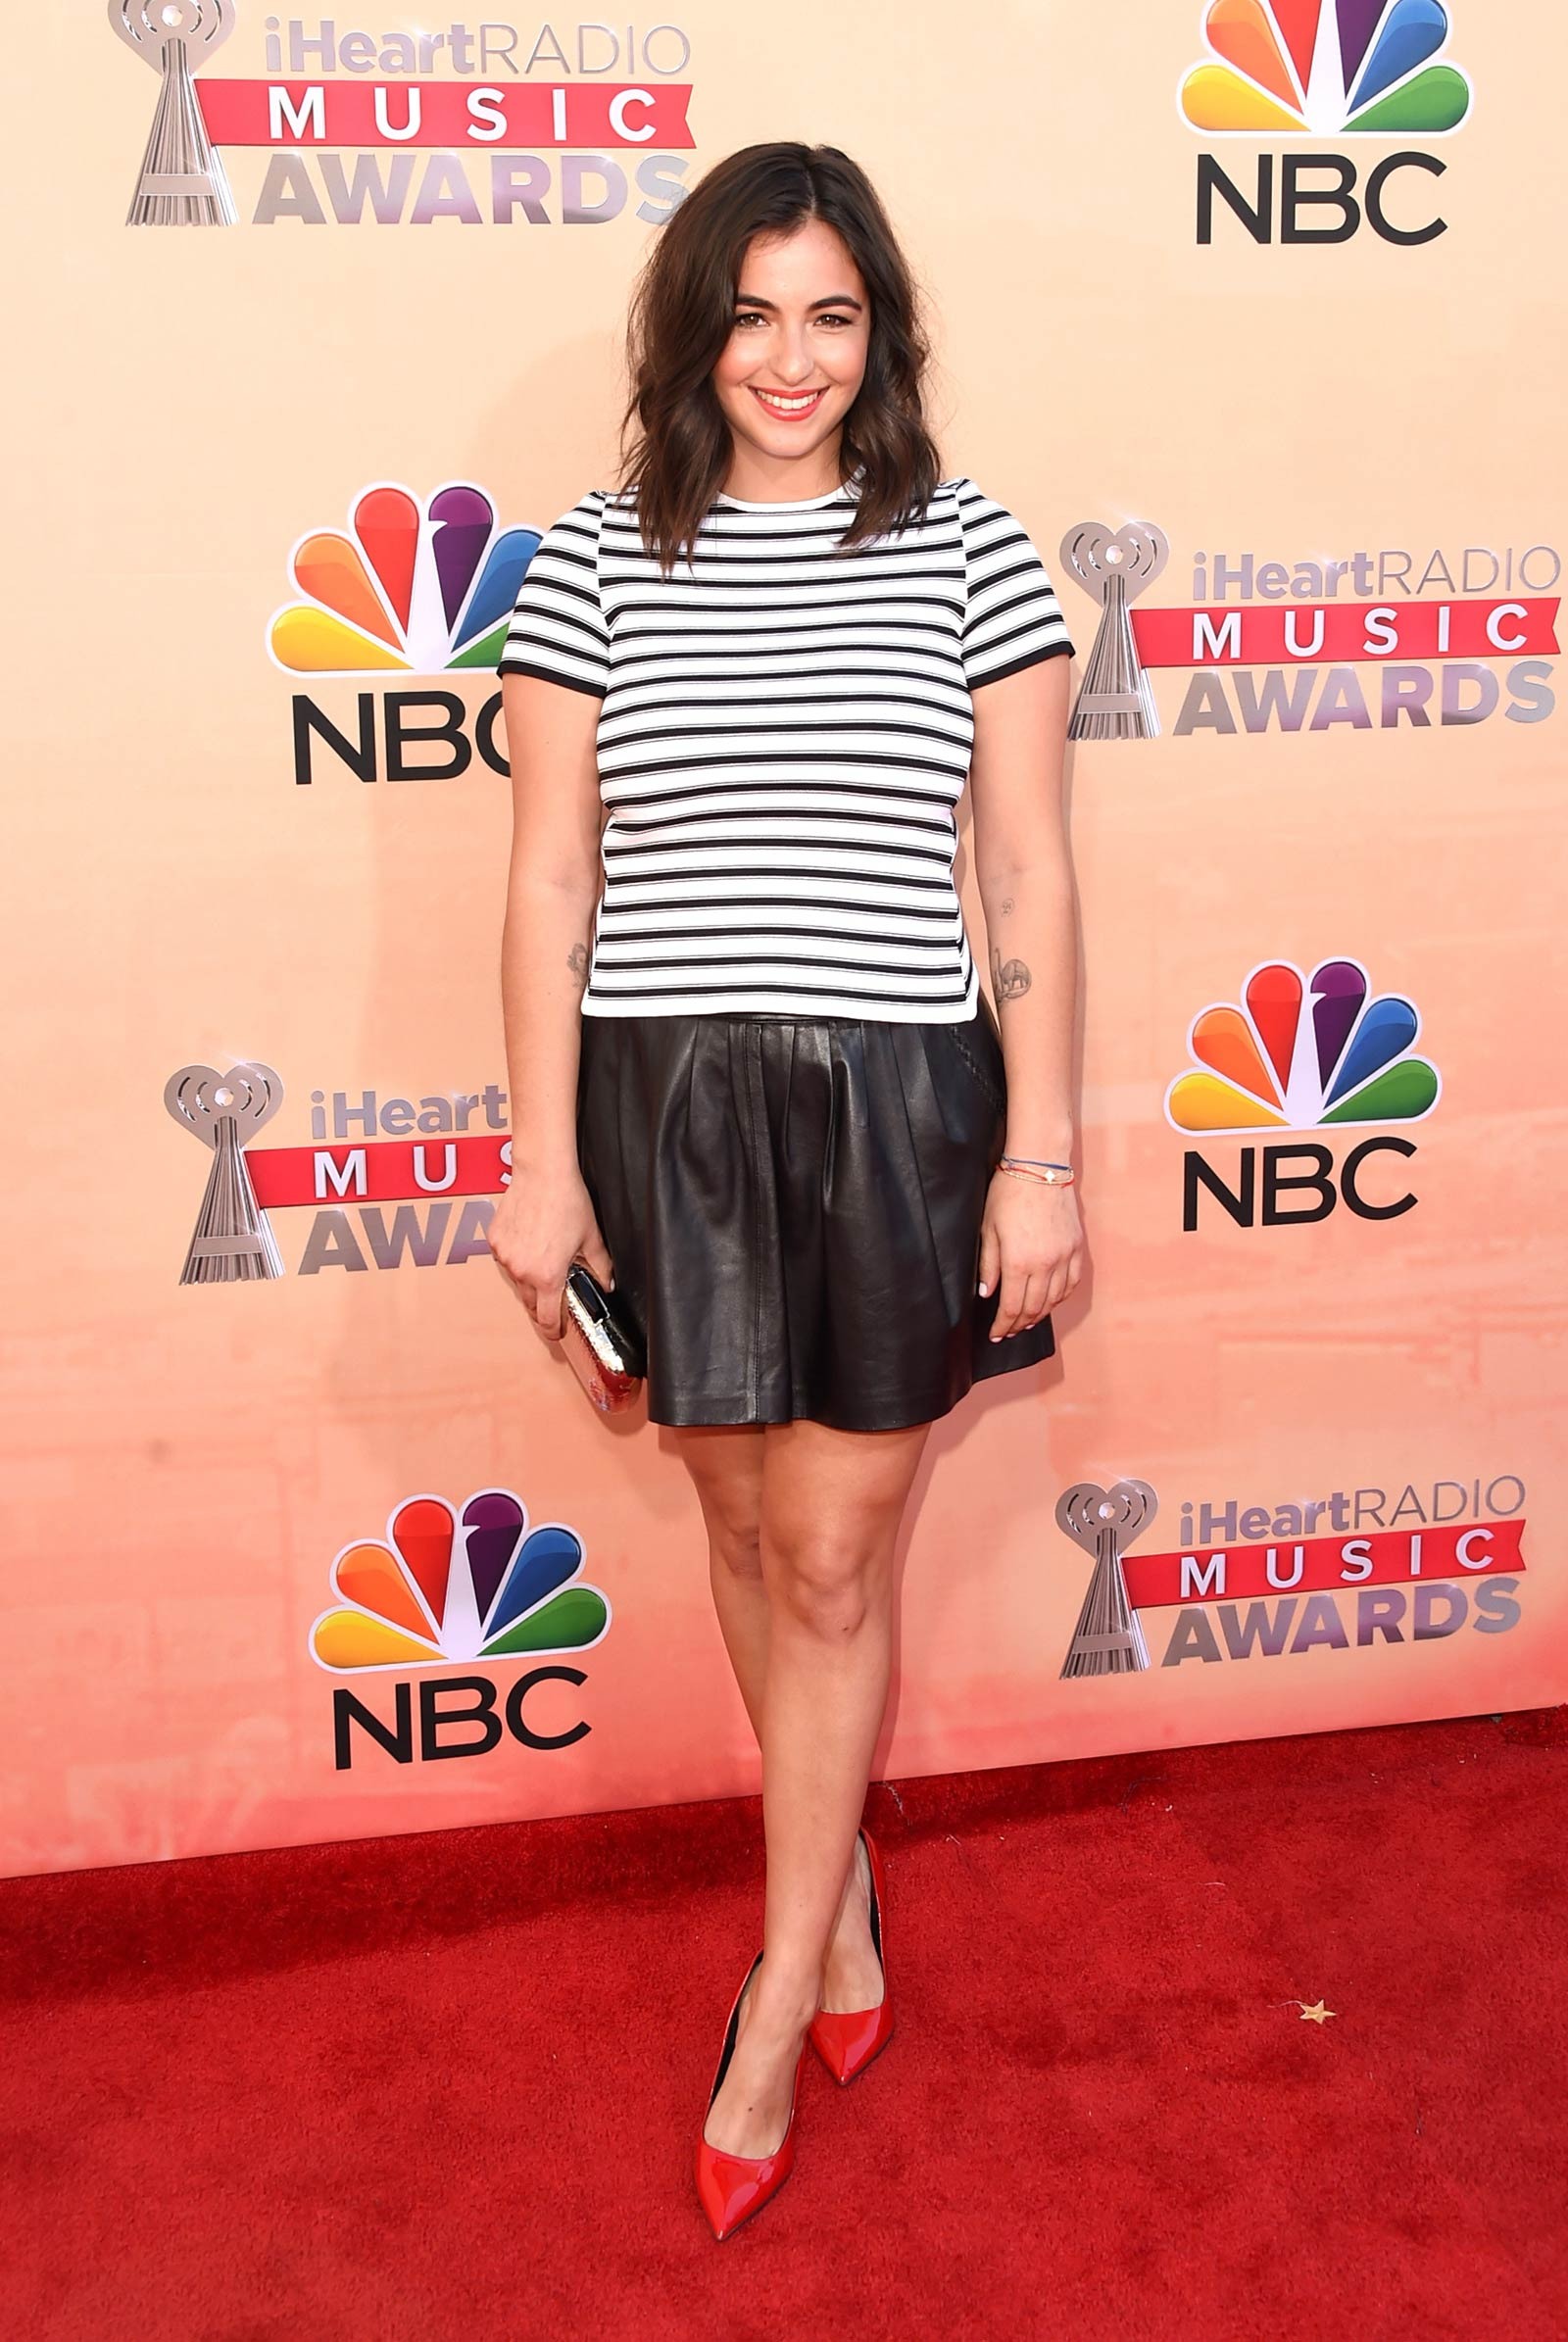 Alanna Masterson attends 2015 iHeartRadio Music Awards